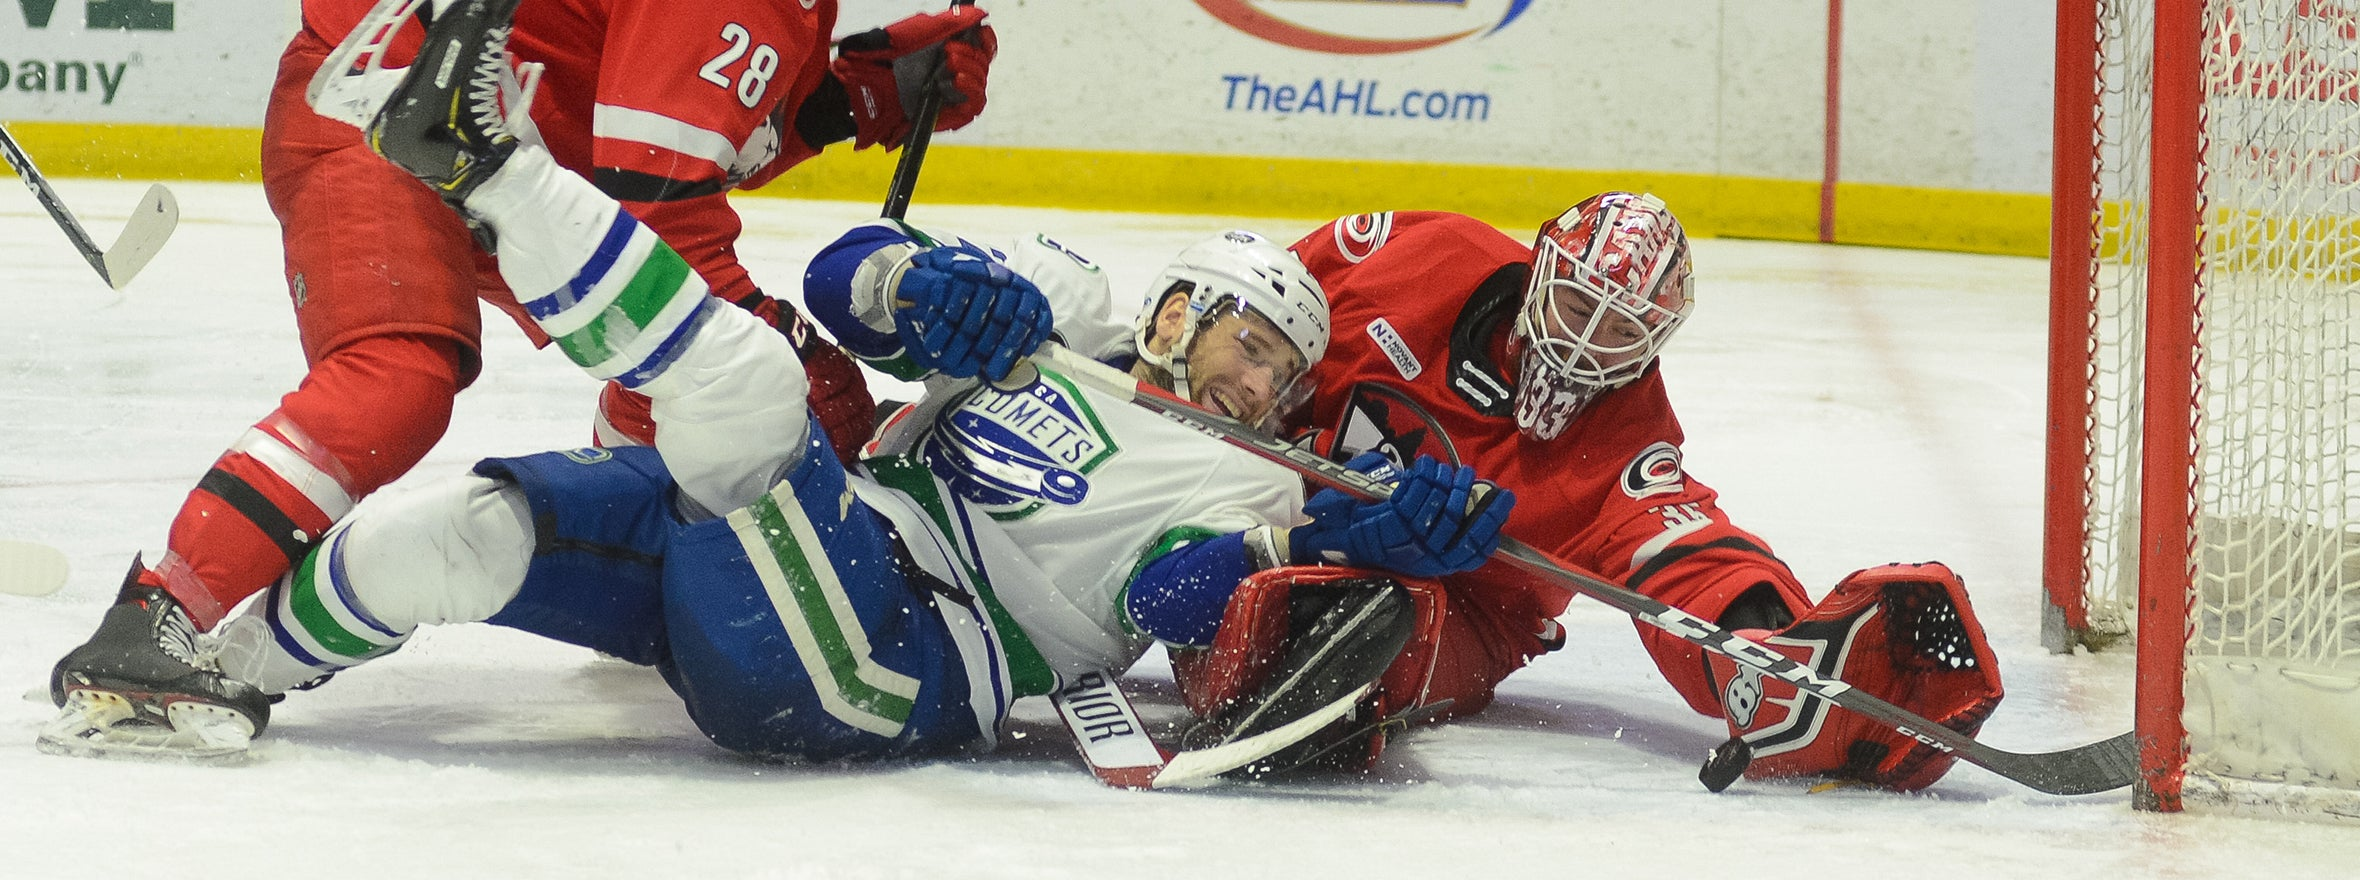 COMETS STIFLED BY CHARLOTTE DEFENSE